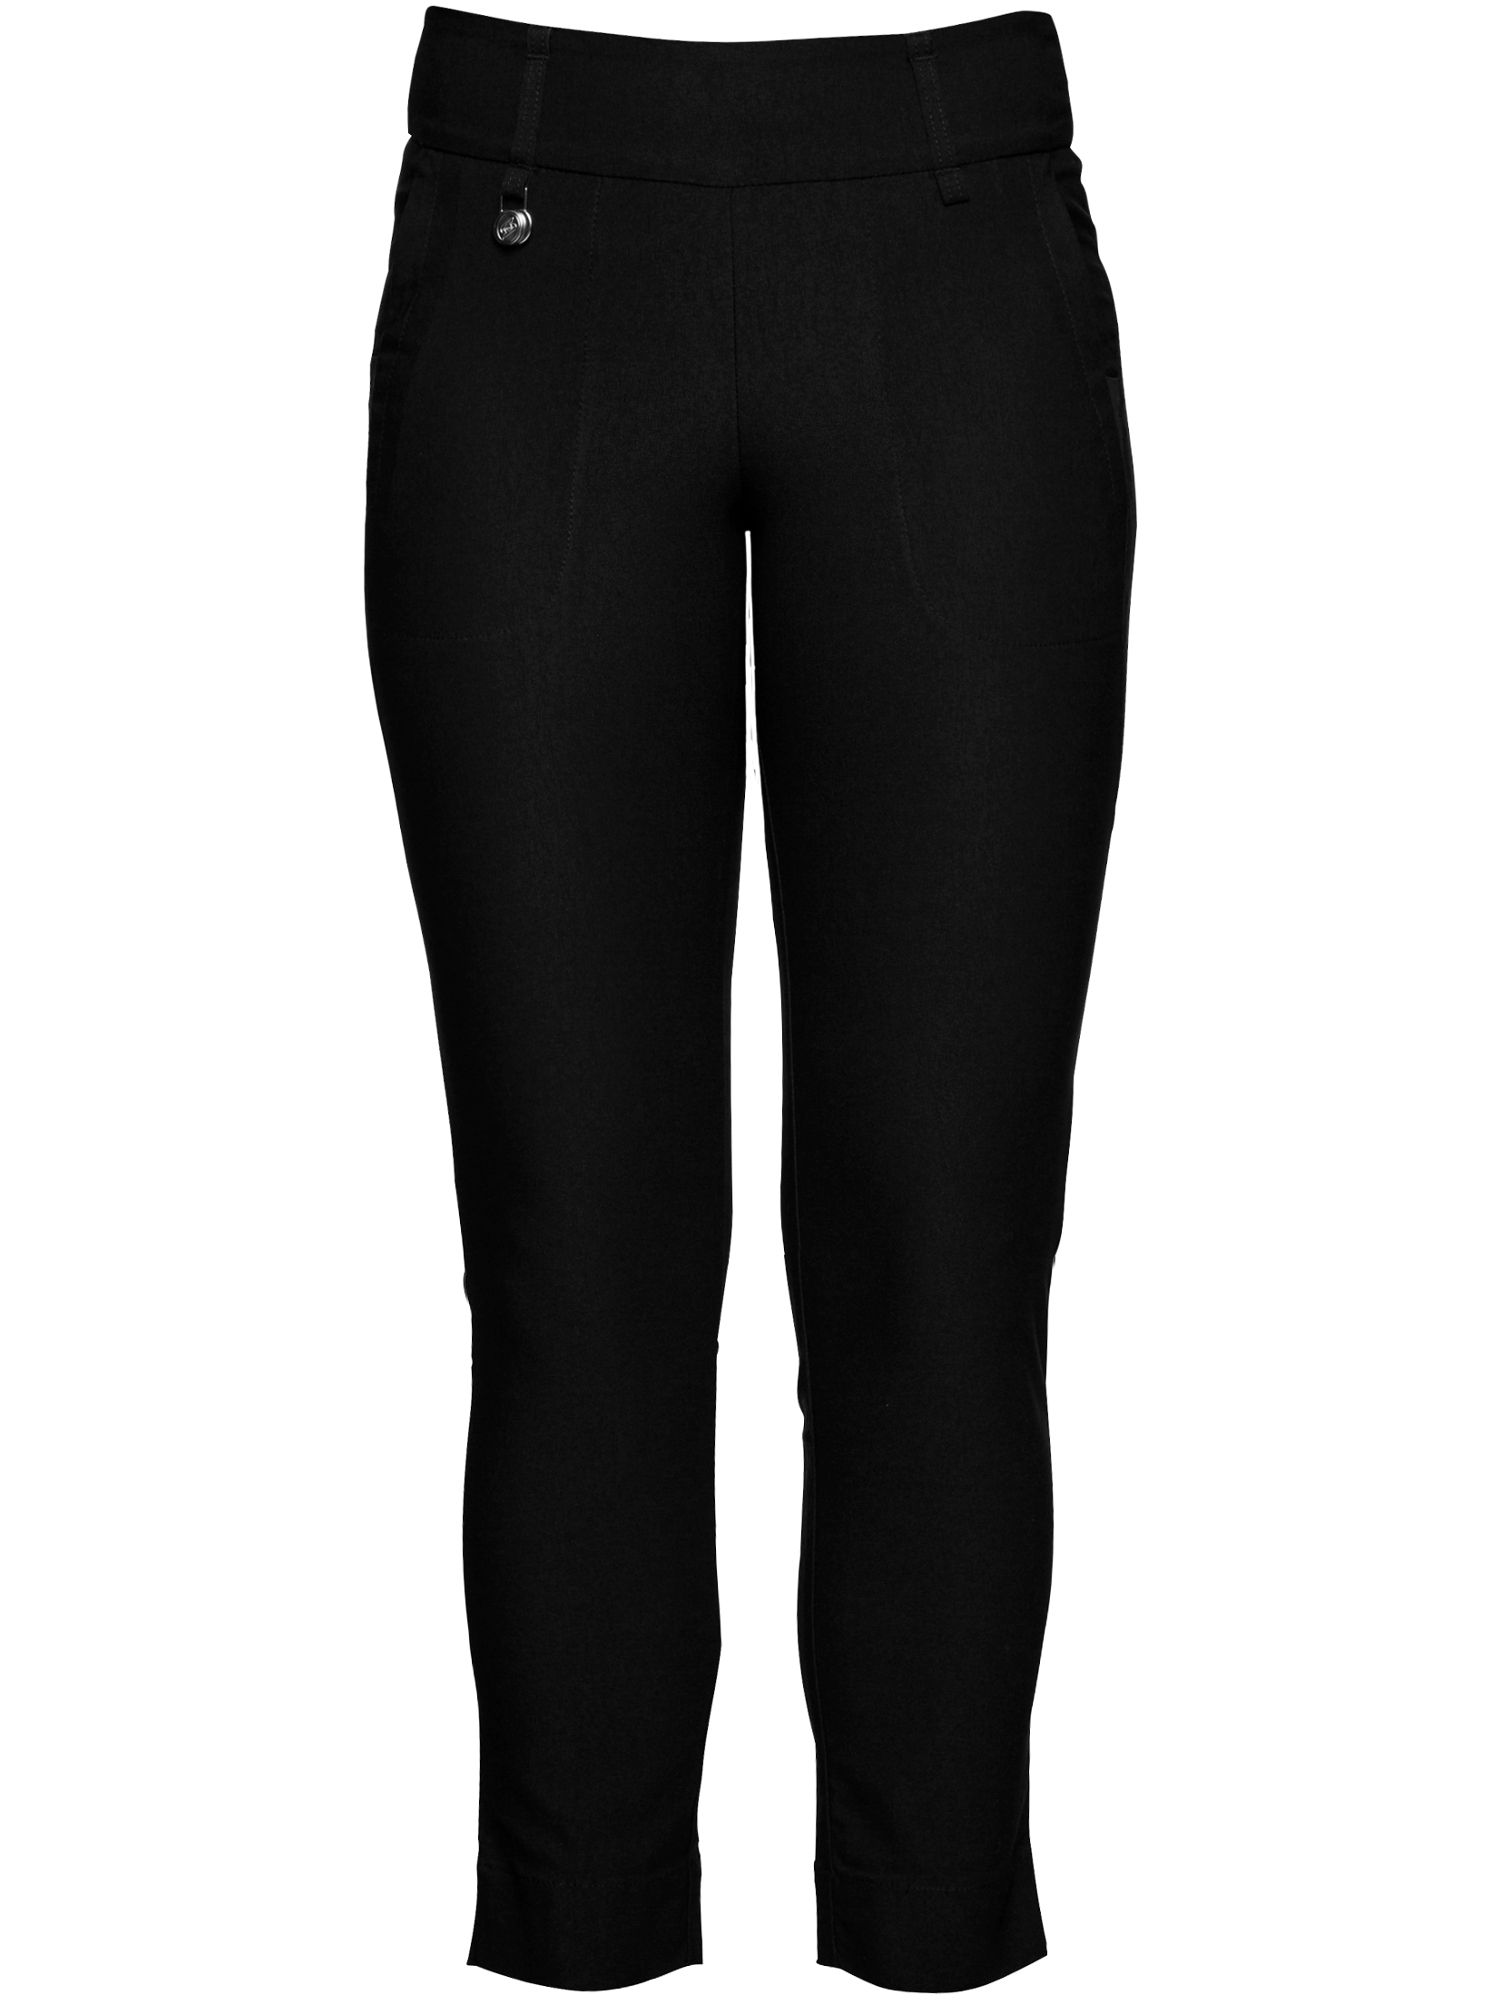 Daily Sports Magic trousers, Black